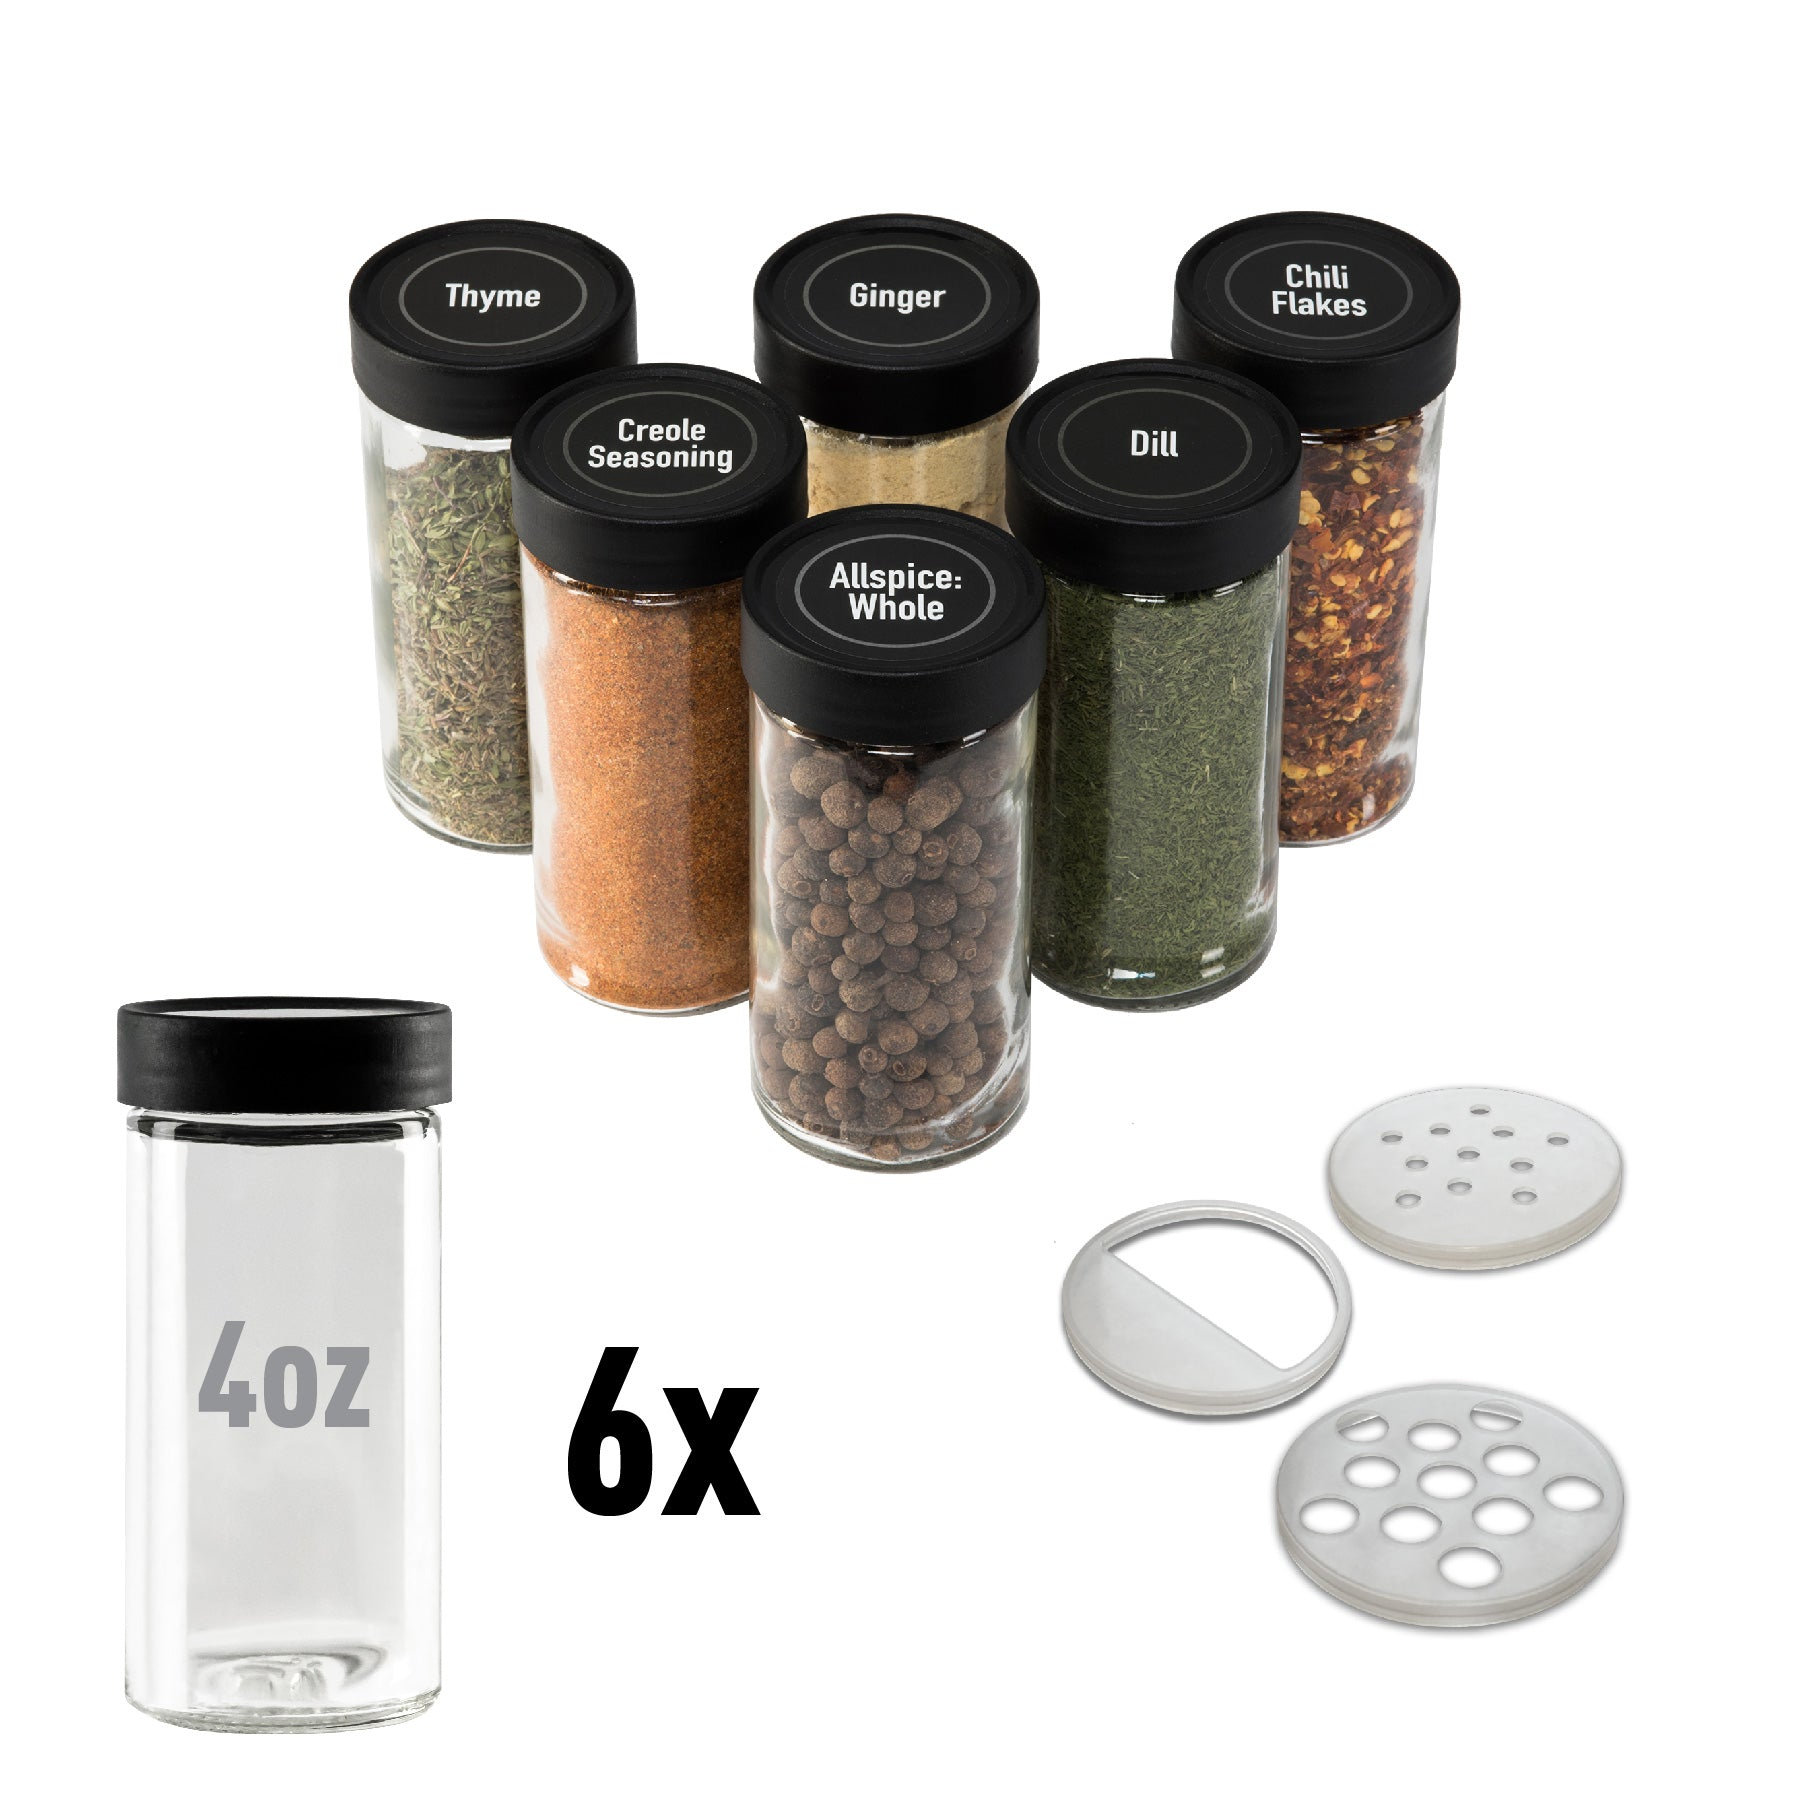 4oz Spice Jars - 6-Pack